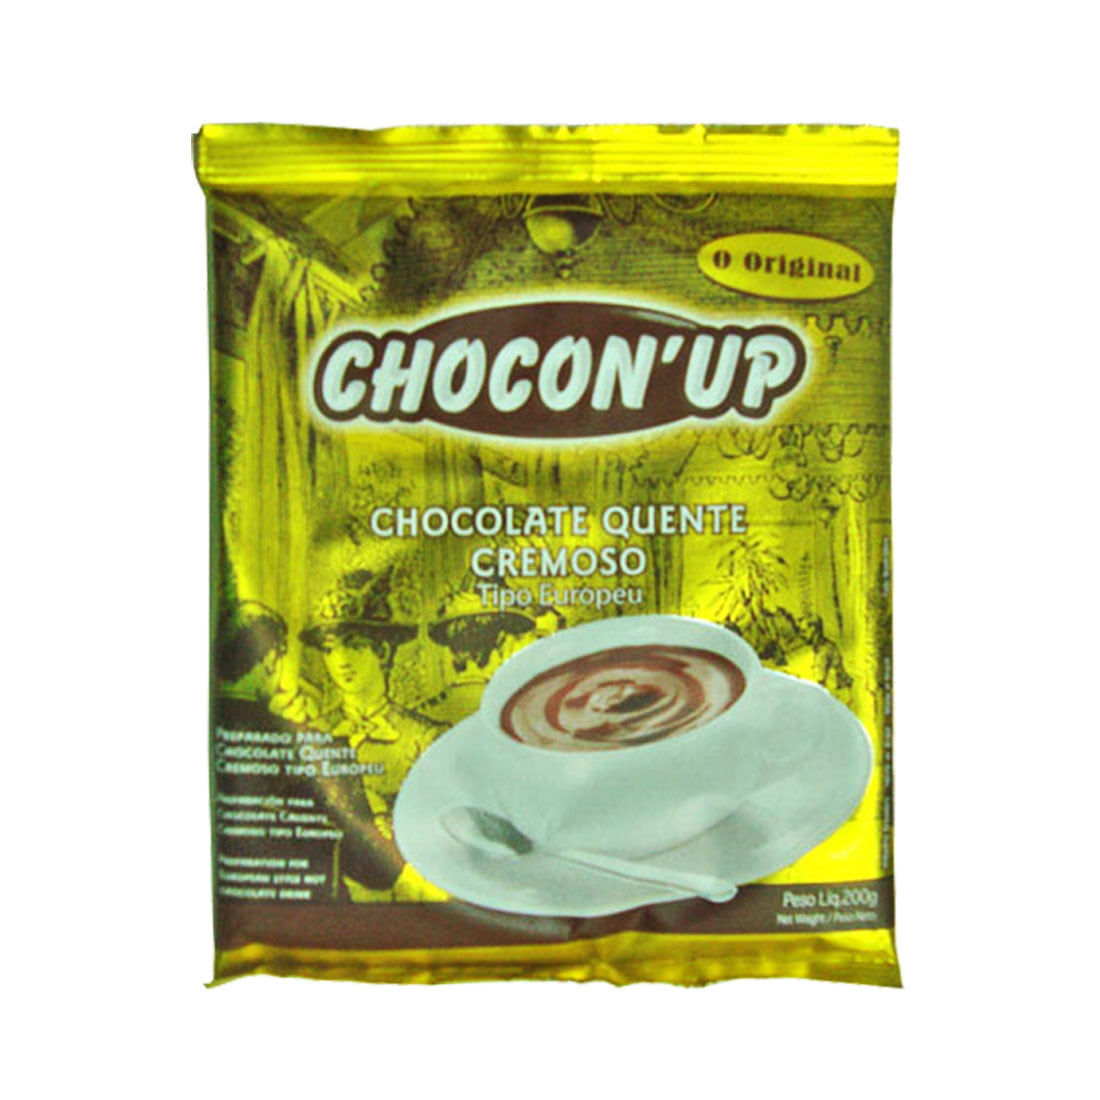 CHOCOLATE QUENTE CREMOSO TIPO EUROPEU - CHOCON´UP - 5 PACOTES